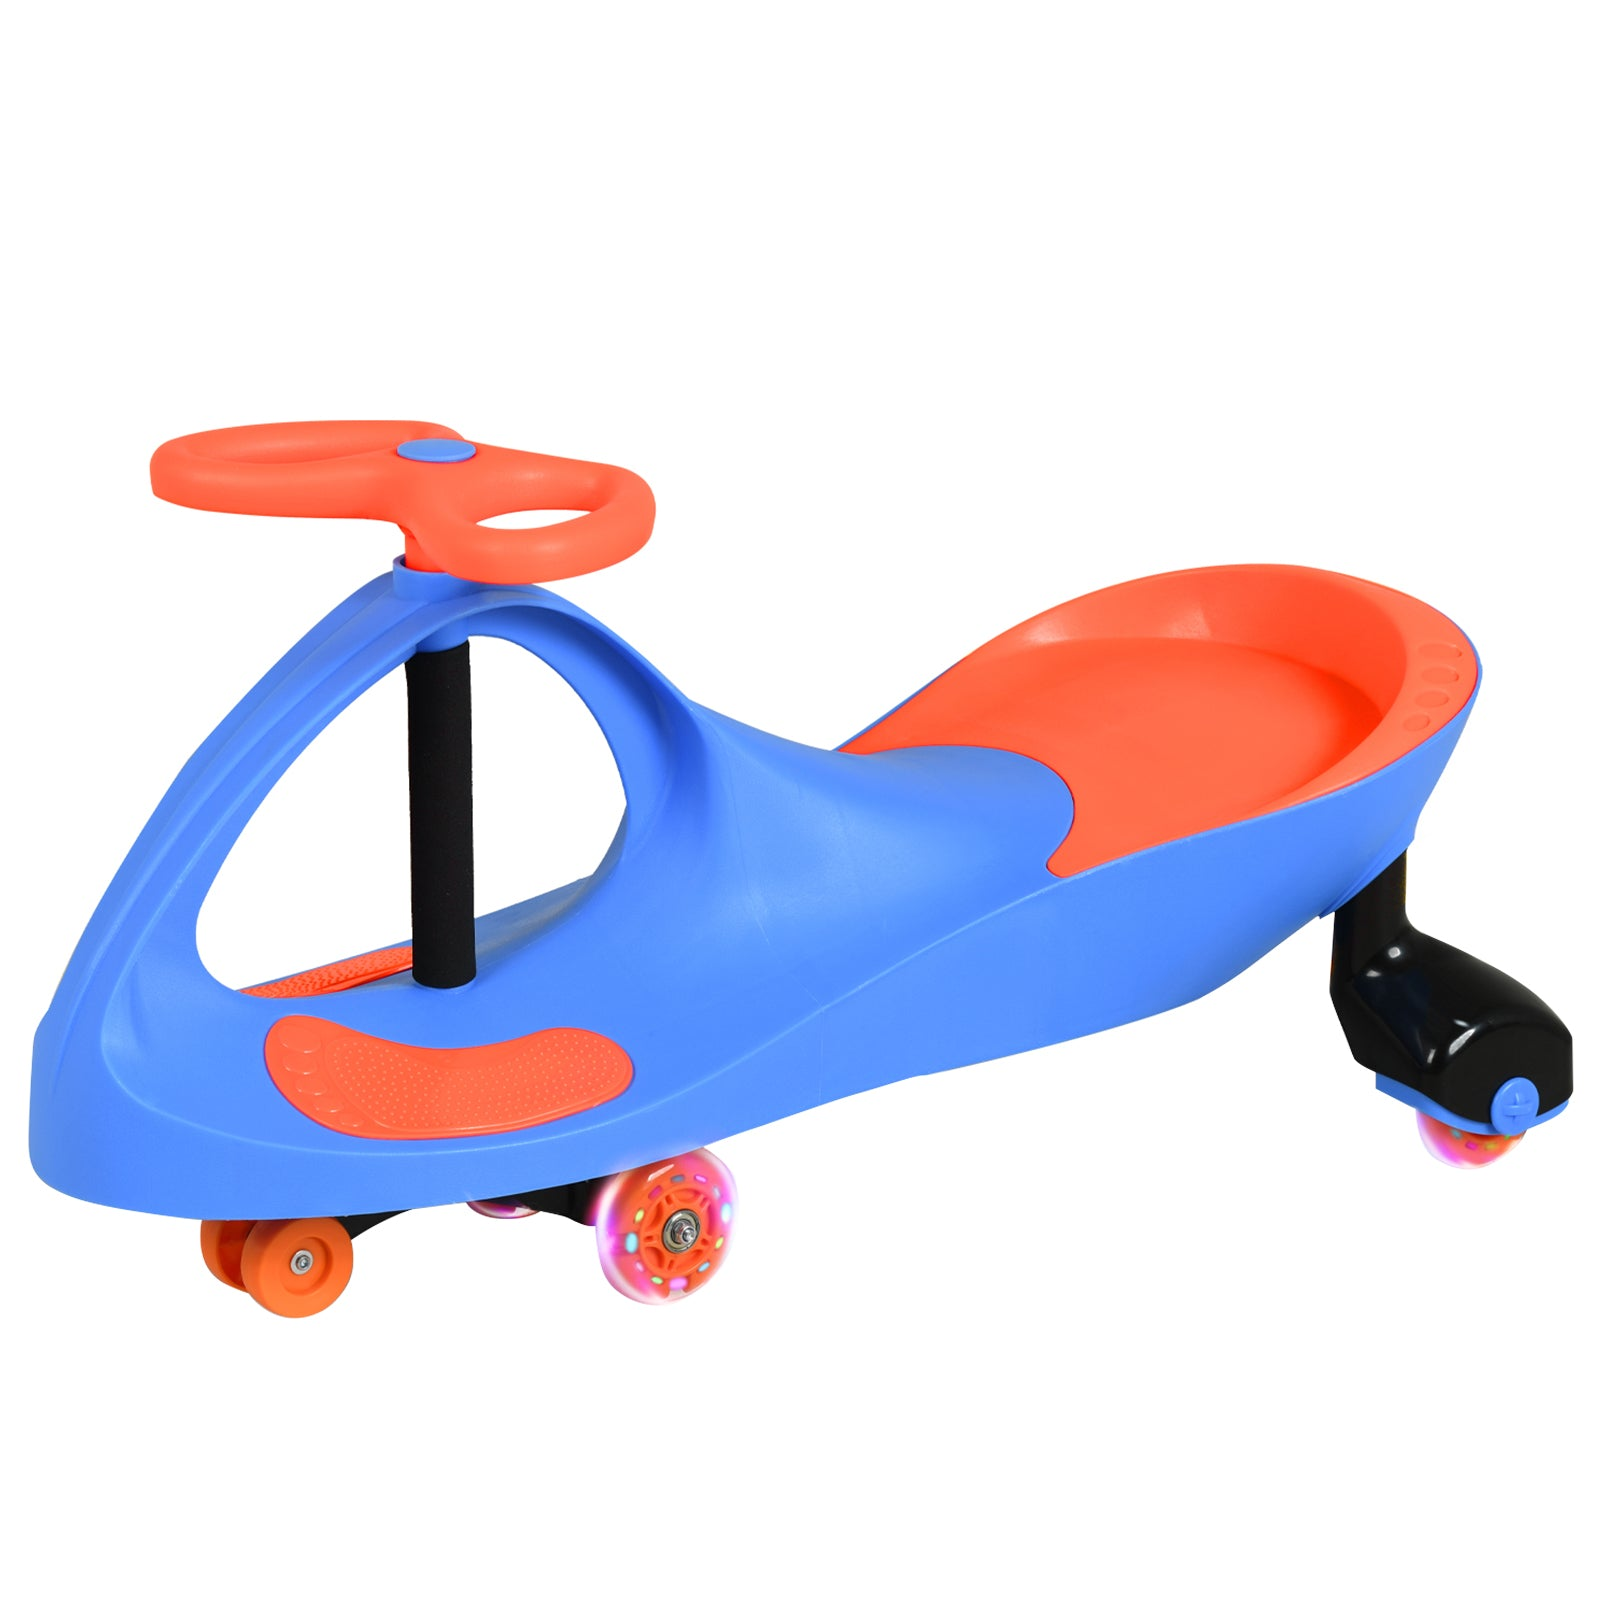 Uenjoy Ride On Car, No Batteries, Gears or Pedals, for 3 to 6 Years Old